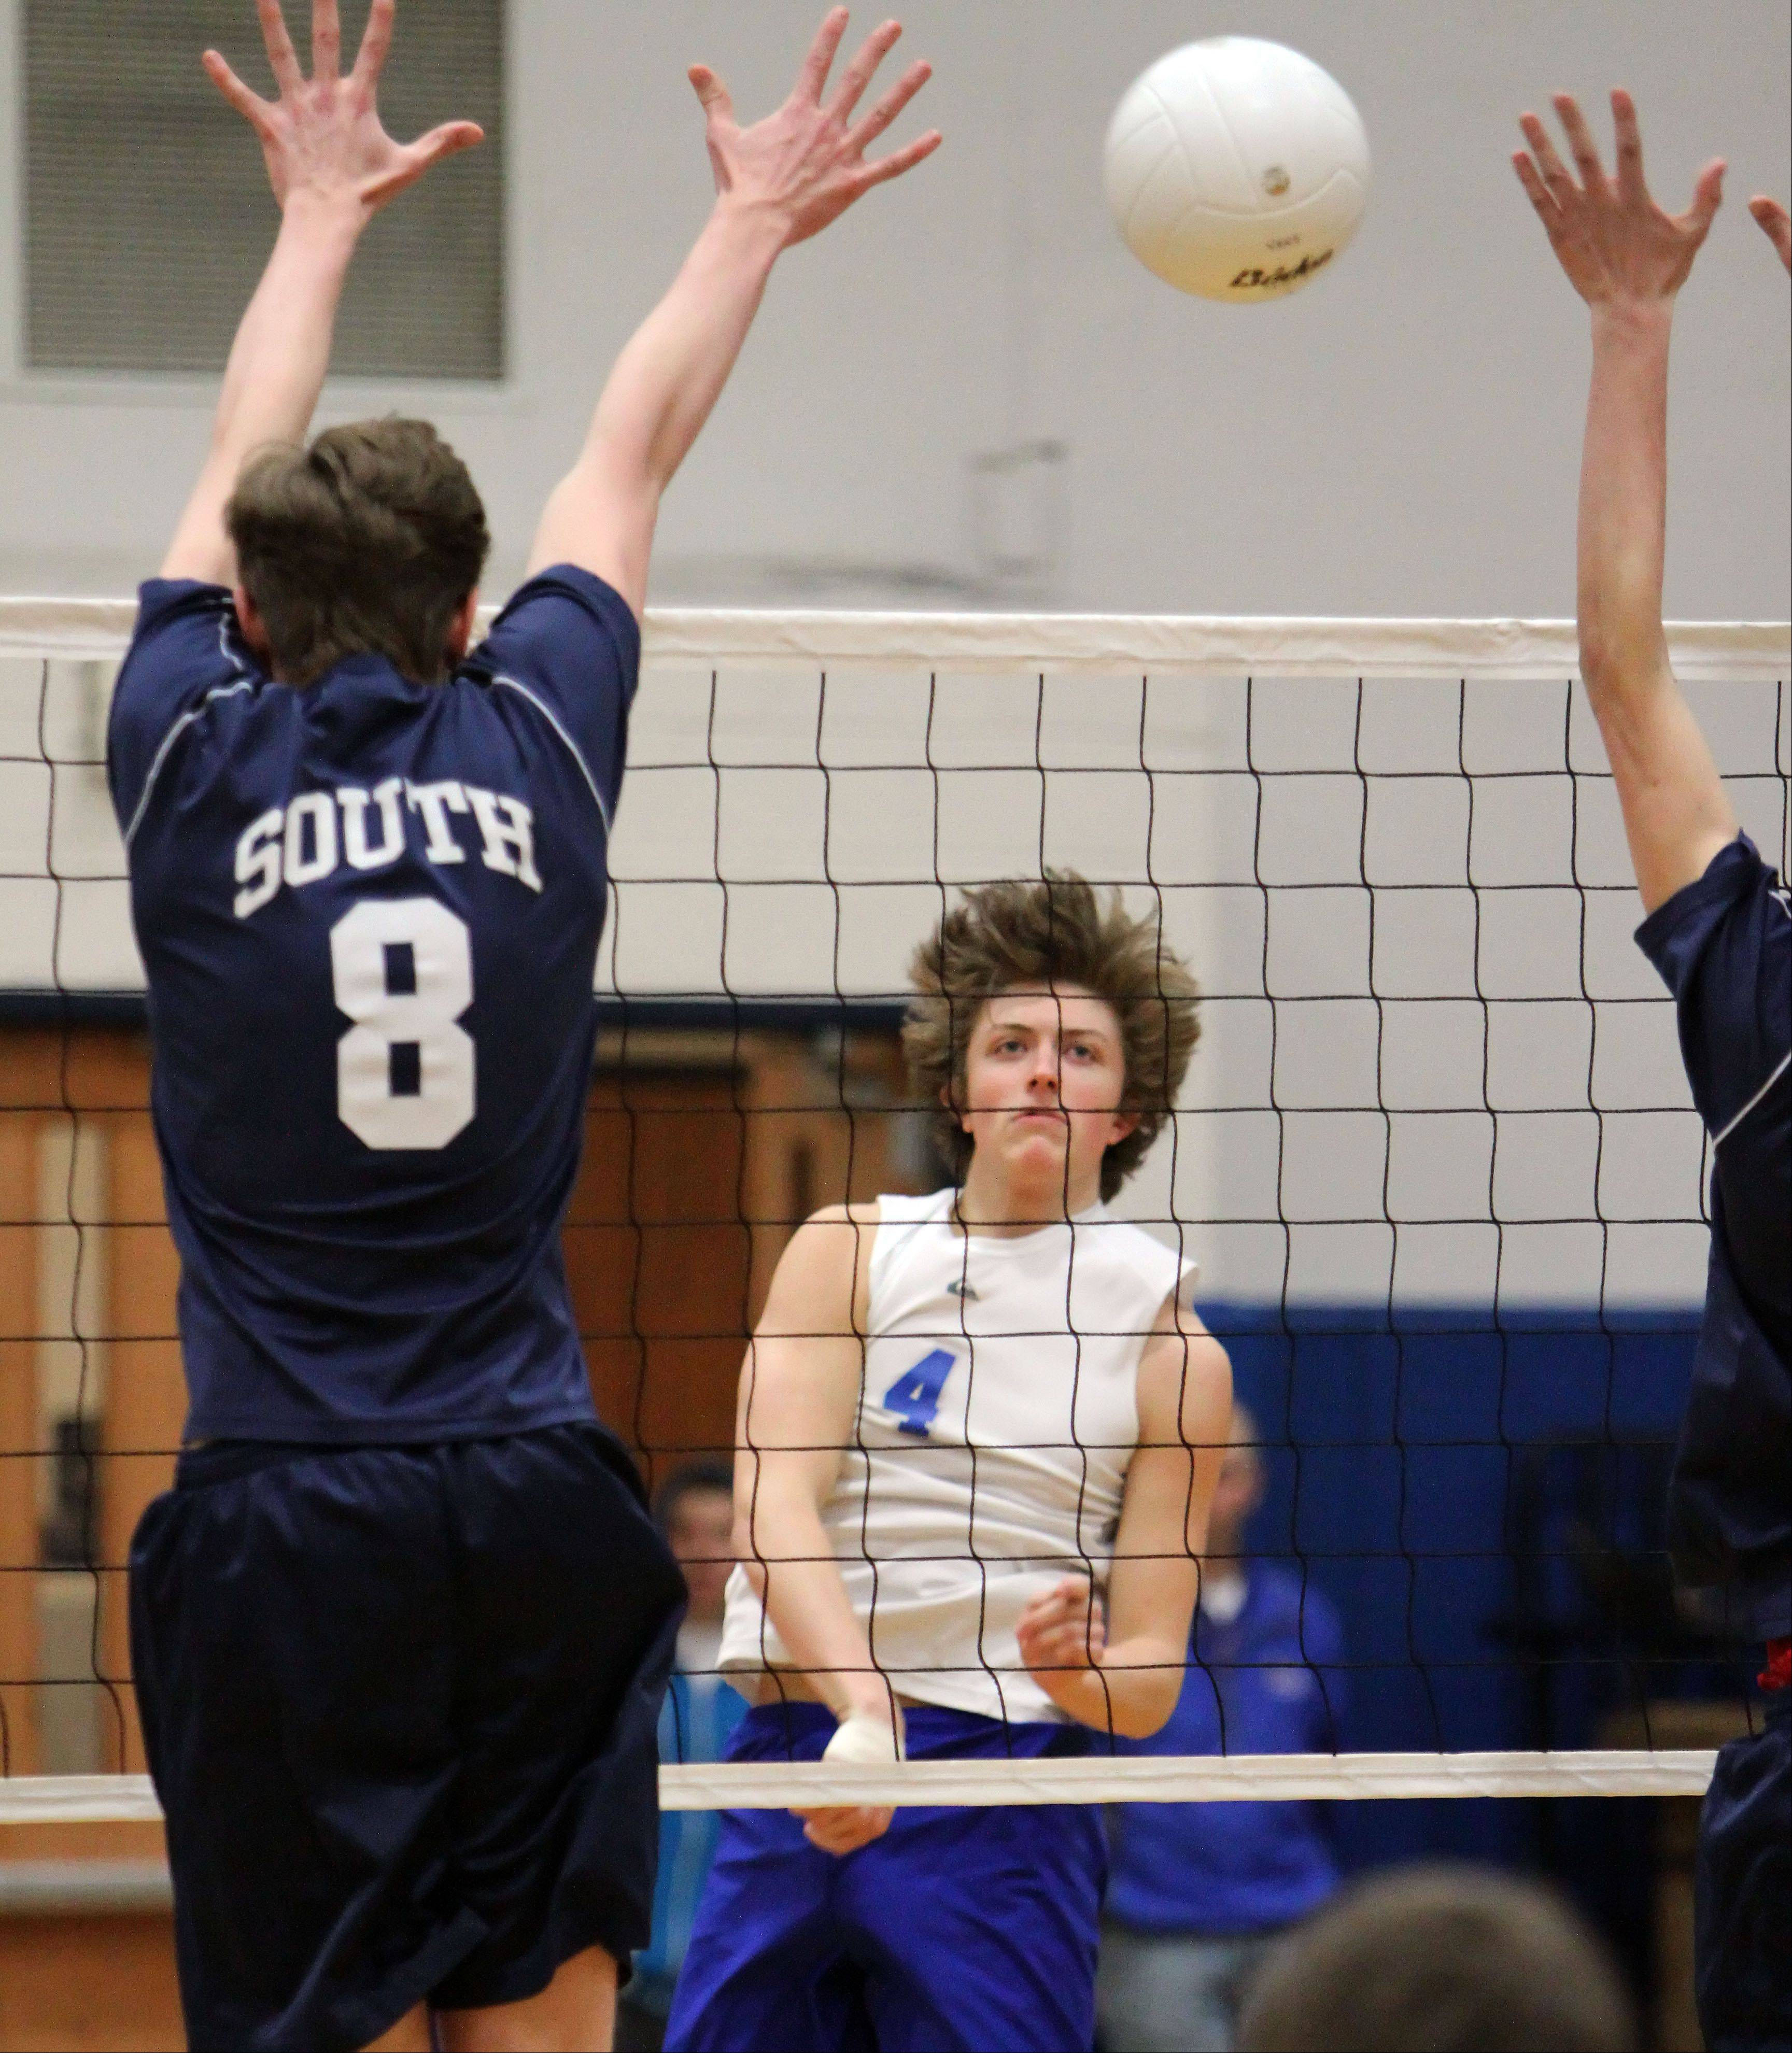 Vernon Hills' Mike Heinz, right, spikes the ball past Glenbrook South's Pawel Rafalo on Wednesday night at Vernon Hills.